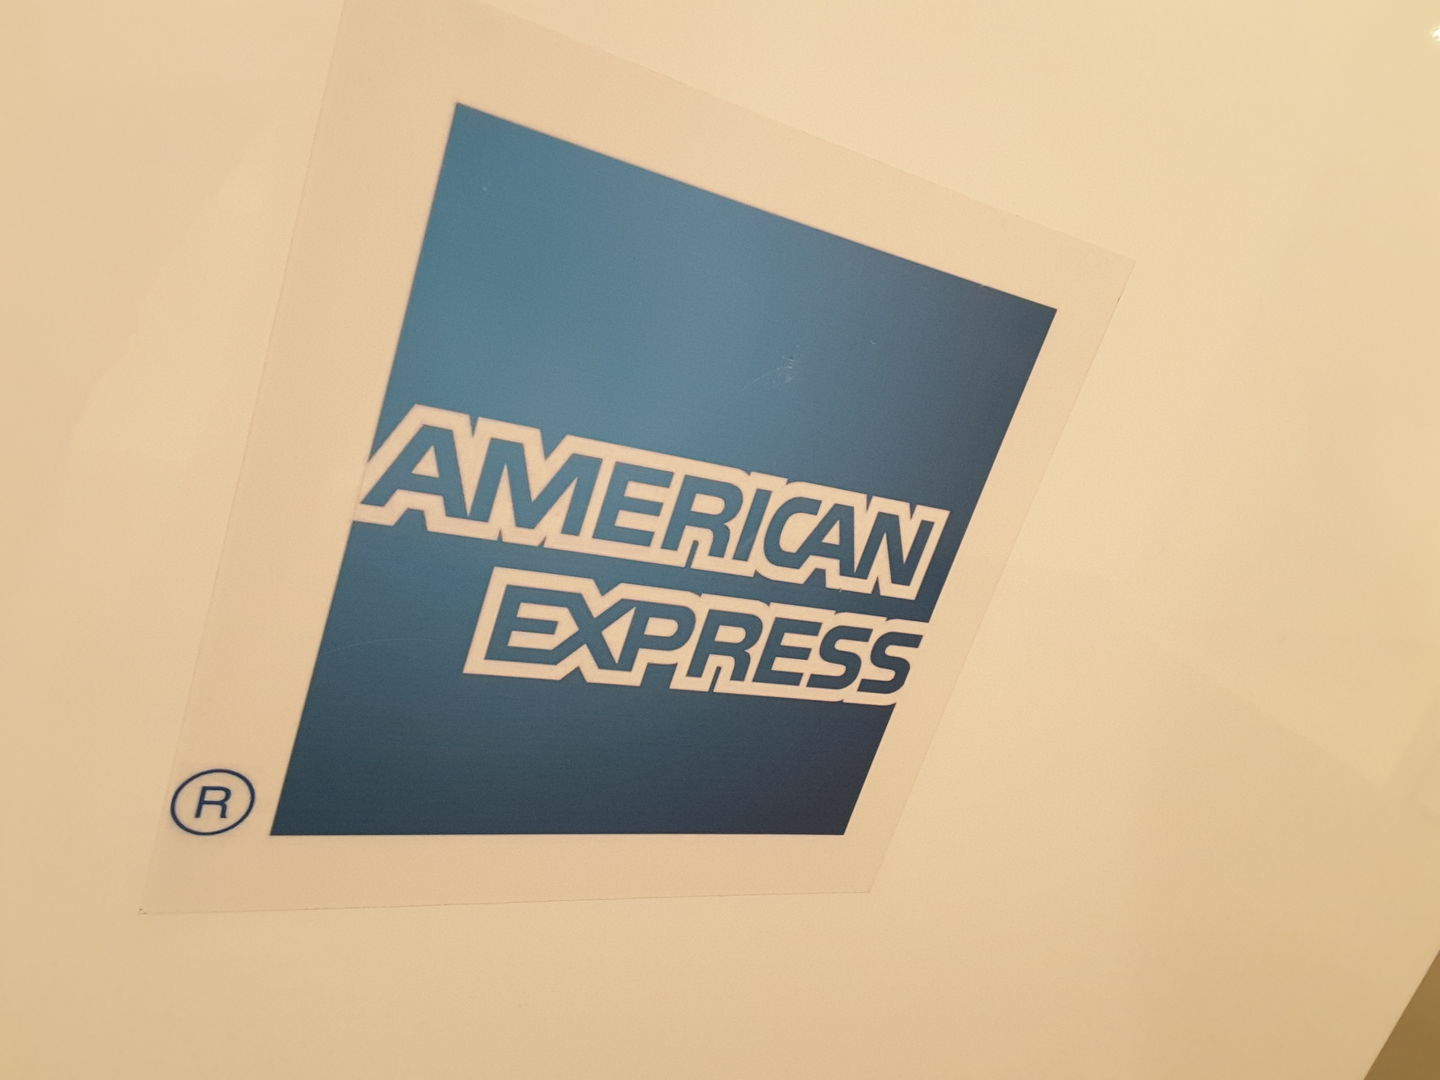 HiDubai-business-american-express-finance-legal-financial-services-dubai-media-city-al-sufouh-2-dubai-2